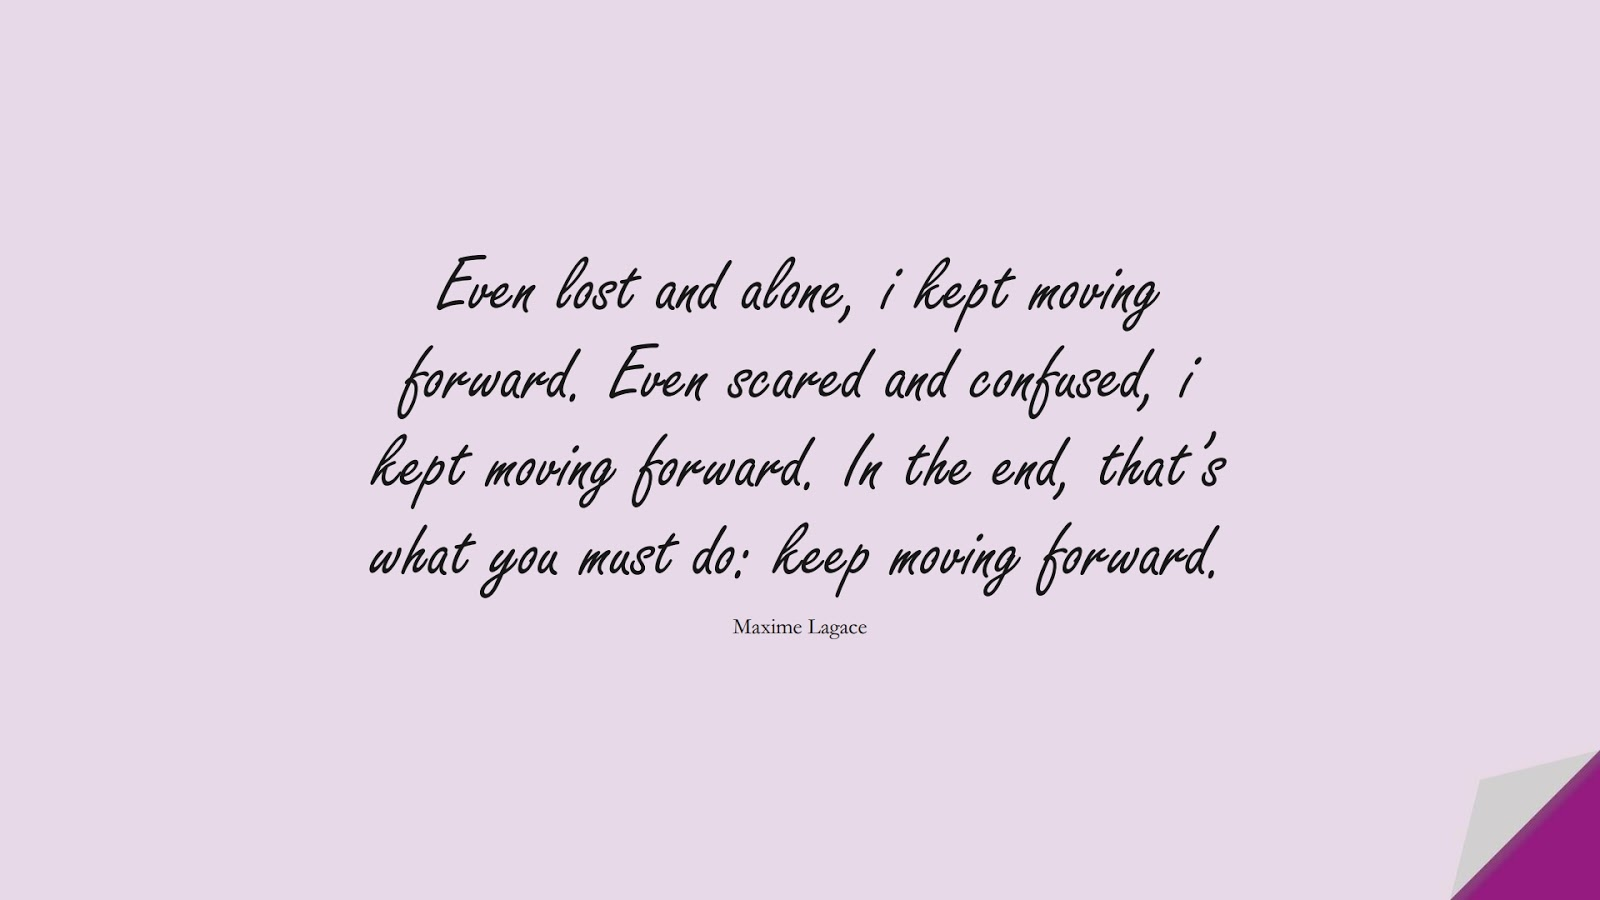 Even lost and alone, i kept moving forward. Even scared and confused, i kept moving forward. In the end, that's what you must do: keep moving forward. (Maxime Lagace);  #DepressionQuotes